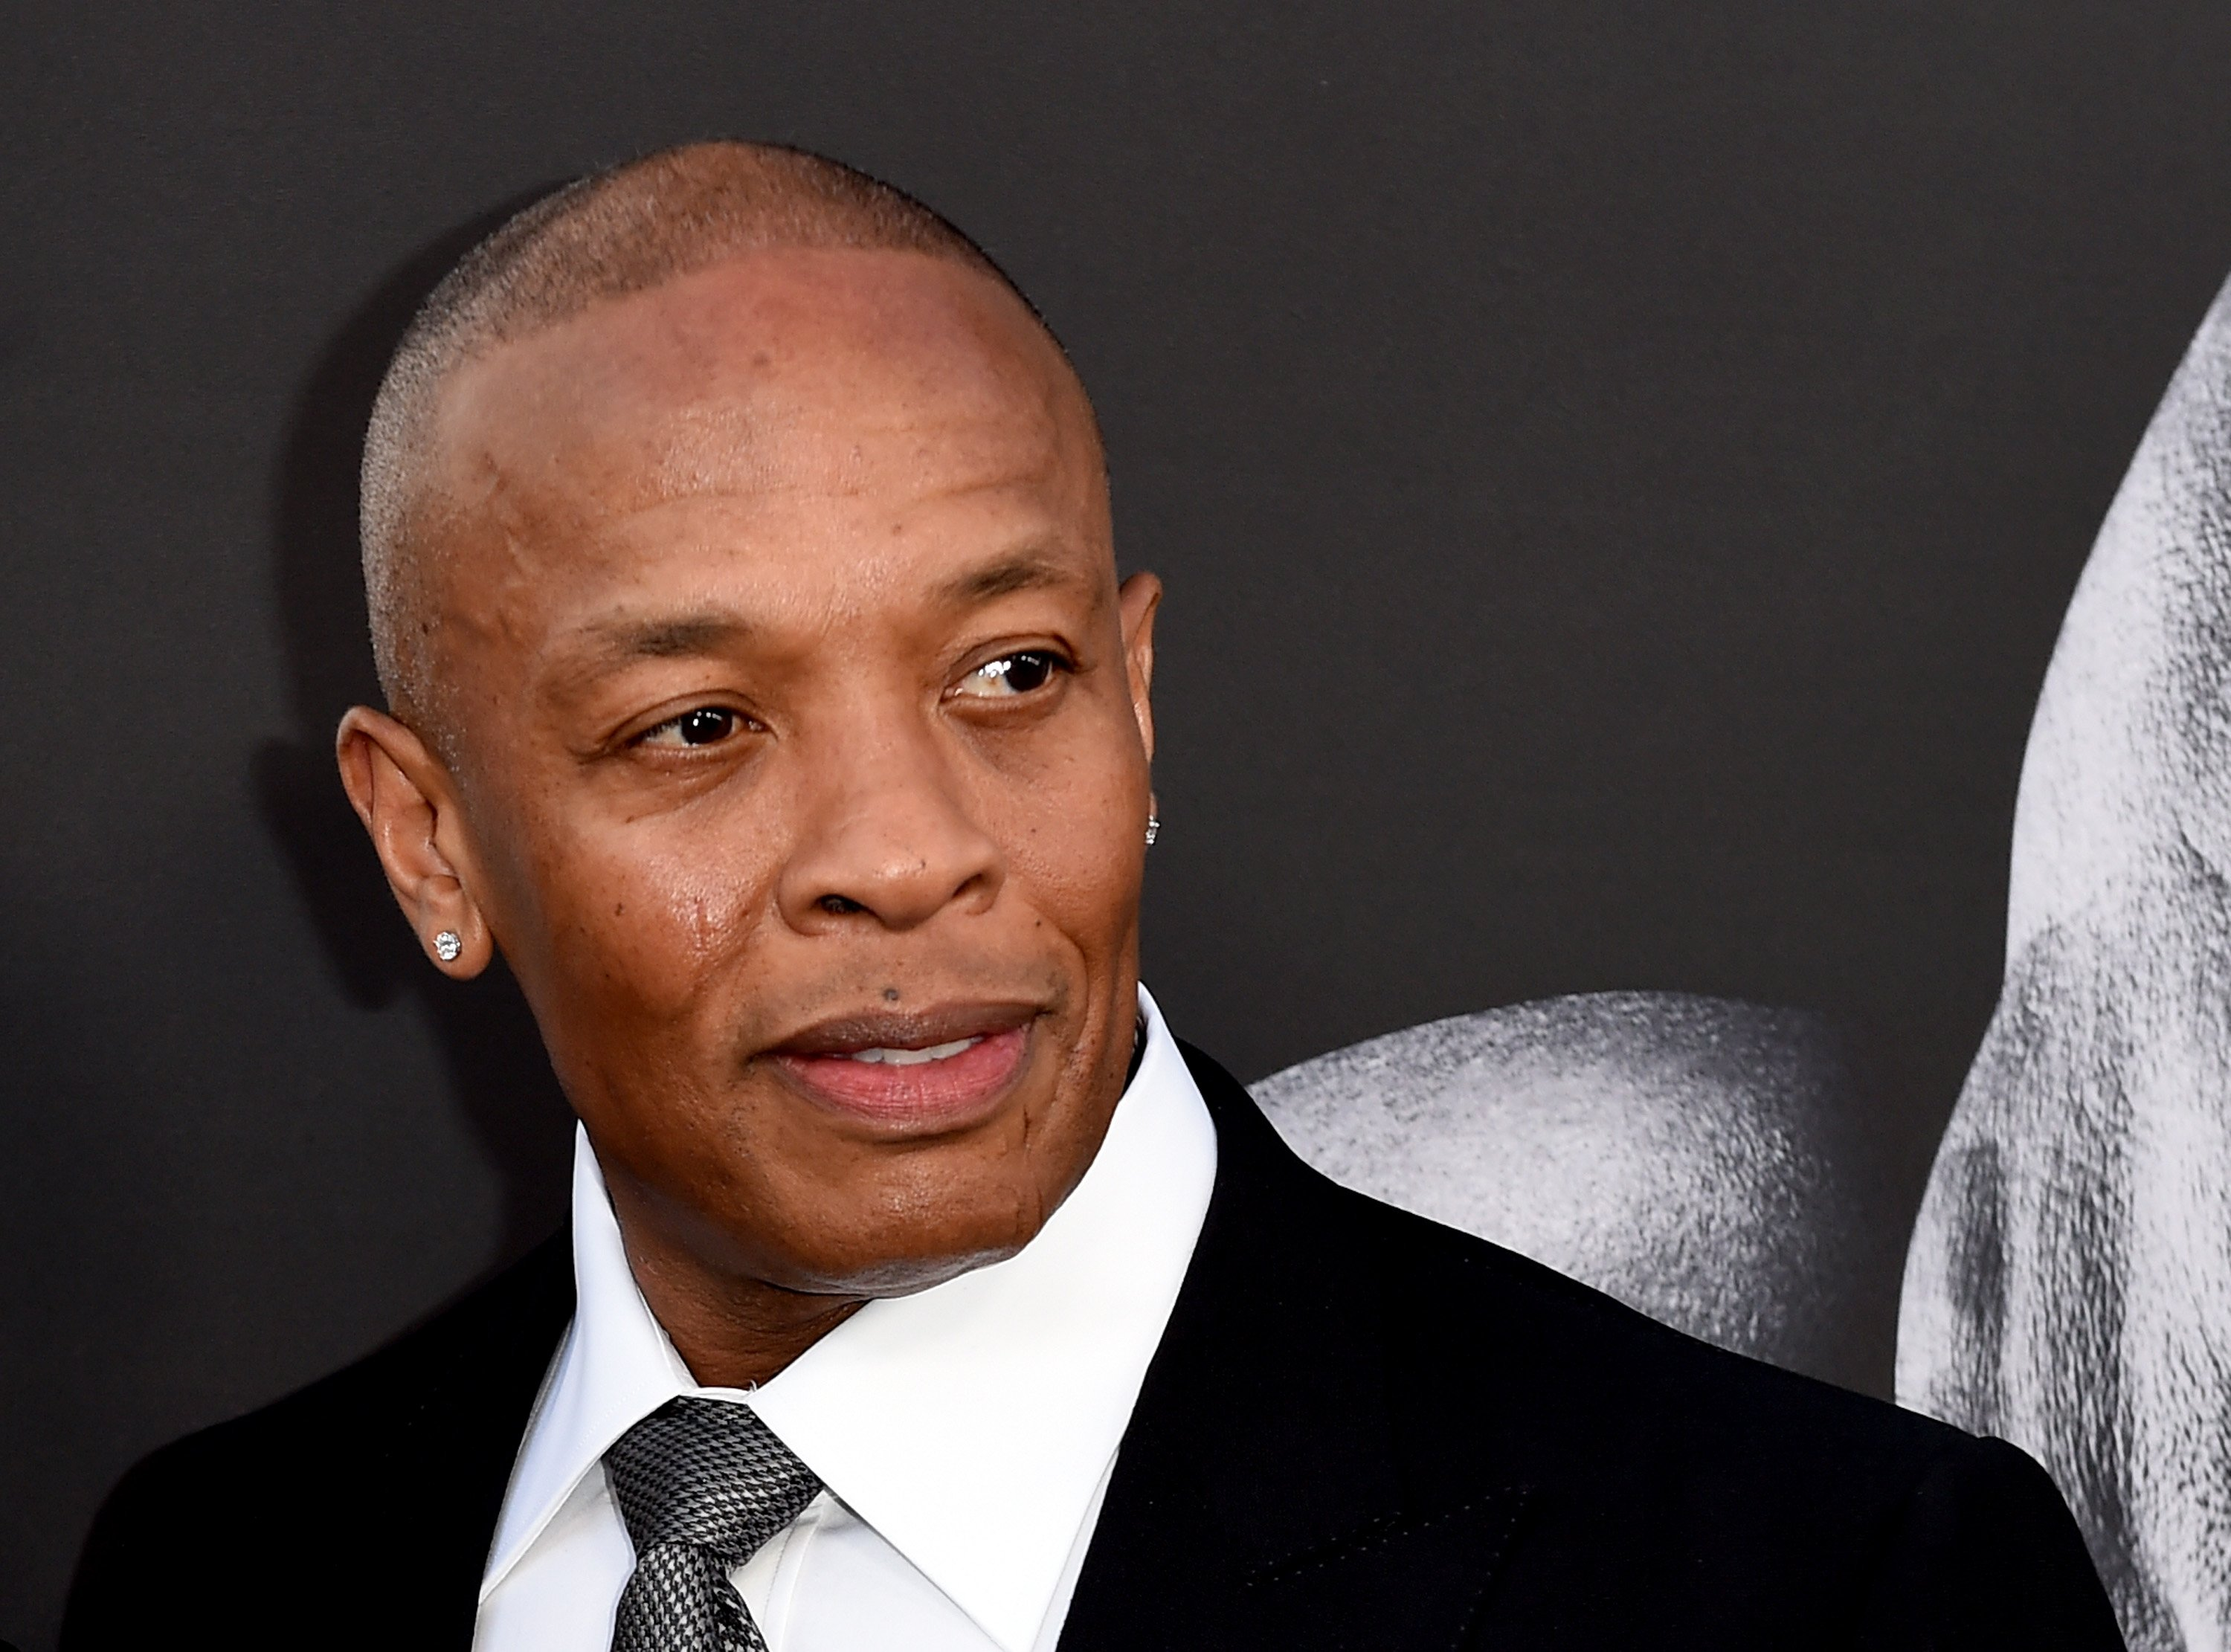 """Dr. Dre attends the premiere of """"The Defiant Ones"""" at Paramount Theatre on June 22, 2017 in Hollywood, California 